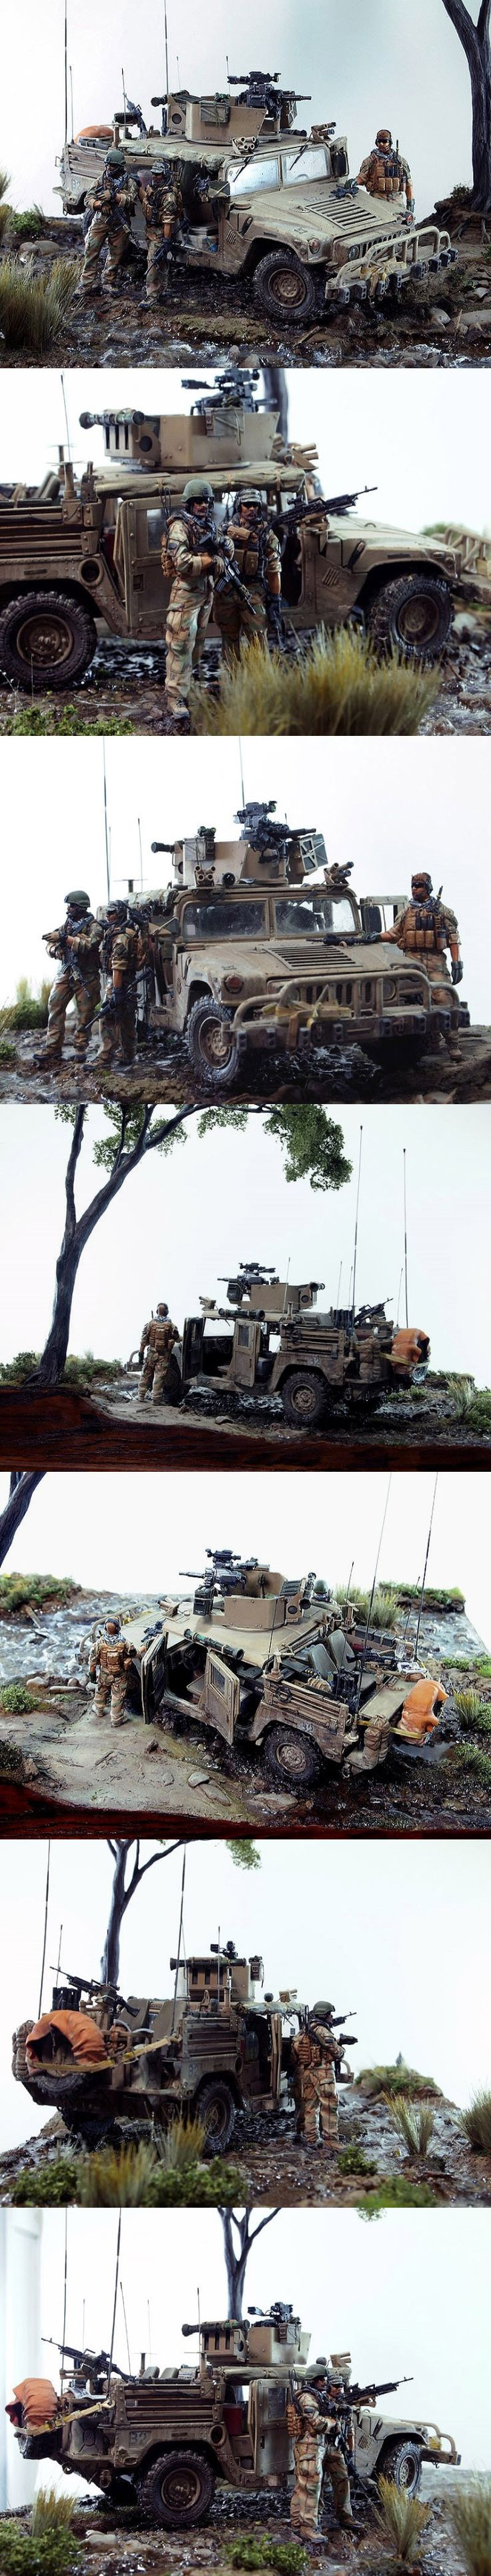 """DUMVEE 1/35 Scale Model Diorama. """"I am torn whether to place this in Miniature Terrain or Miniatures. I don't really want to make a Diorama board. This Diorama feels weighted towards miniature terrain...so there you go."""" John Schmidt"""